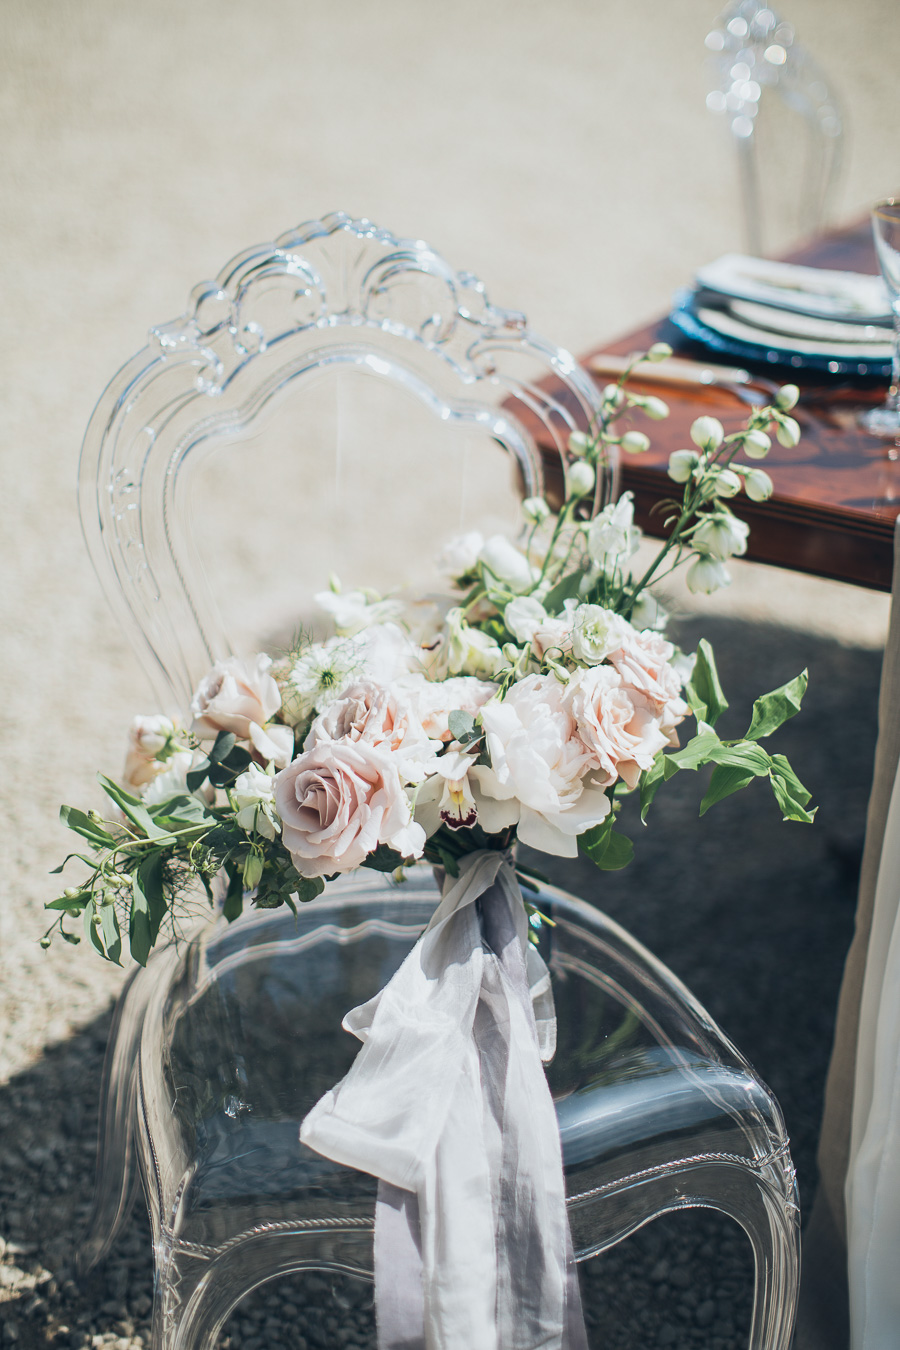 Belle Epoque wedding style inspiration with Wedhead, image credit Elina Sazonova Photography (1)